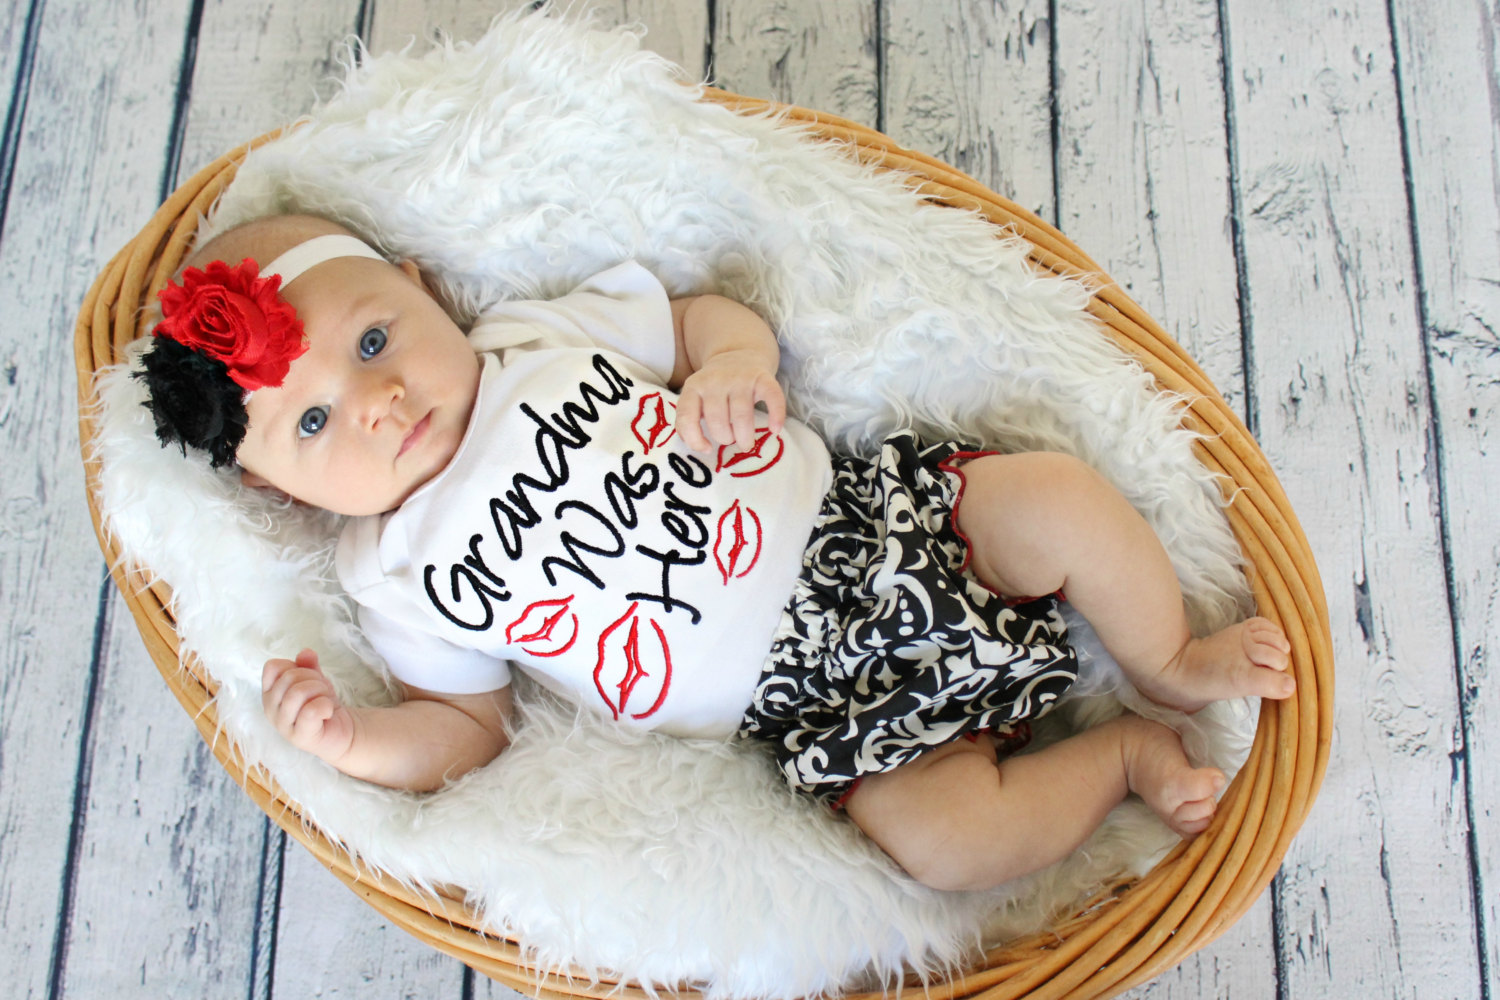 3pcs!!Toddler Newborn Baby Girls Tops Long Sleeve Kiss Romper+PP Pants+Flower Headband Outfit Set Clothes 3